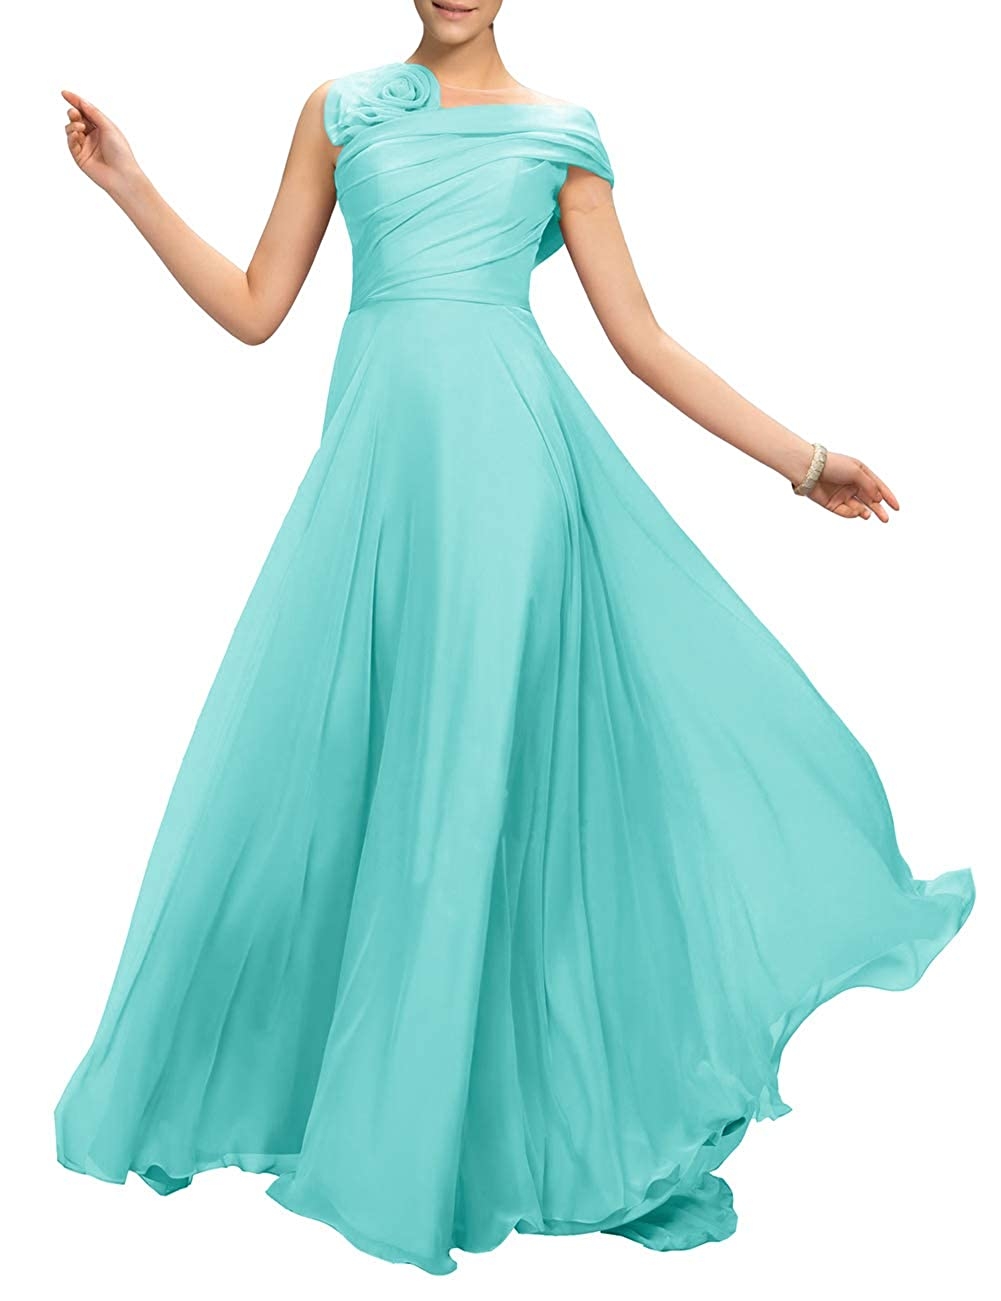 Aqua Uther Flower Long Prom Dress ALine Bridesmaid Dresses Formal Evening Party Gown